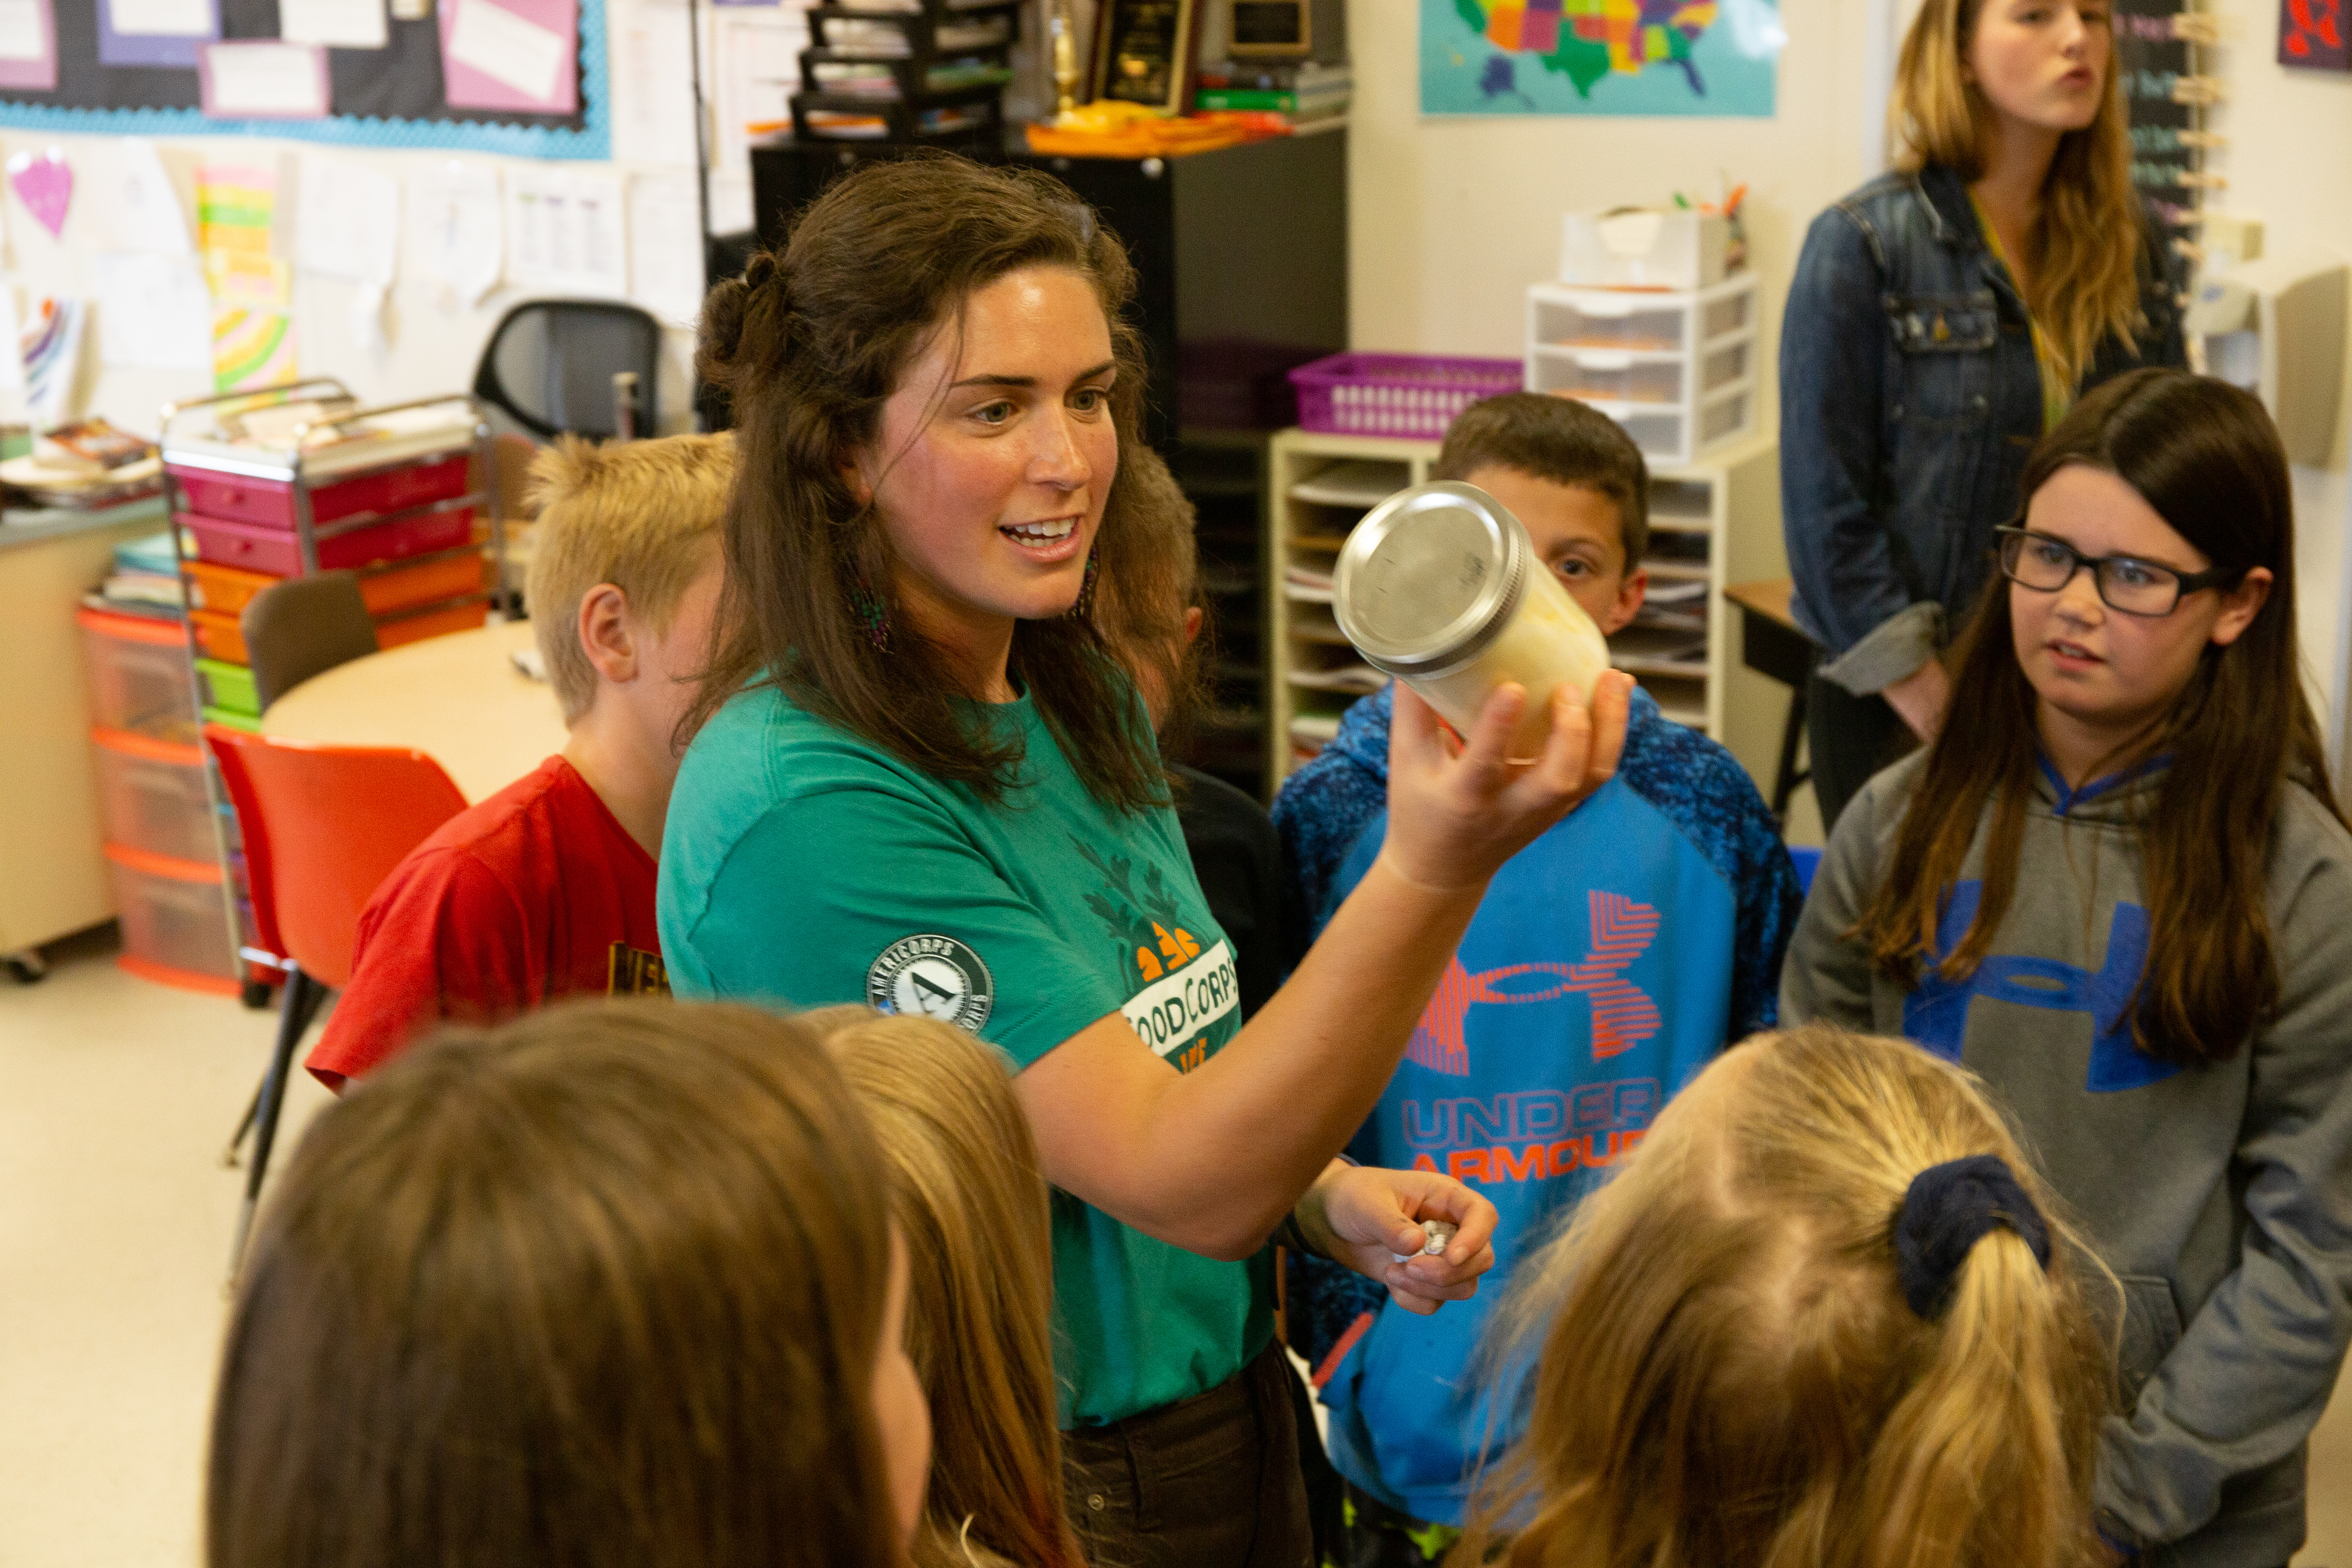 A FoodCorps service member teaches young kids in the classroom.